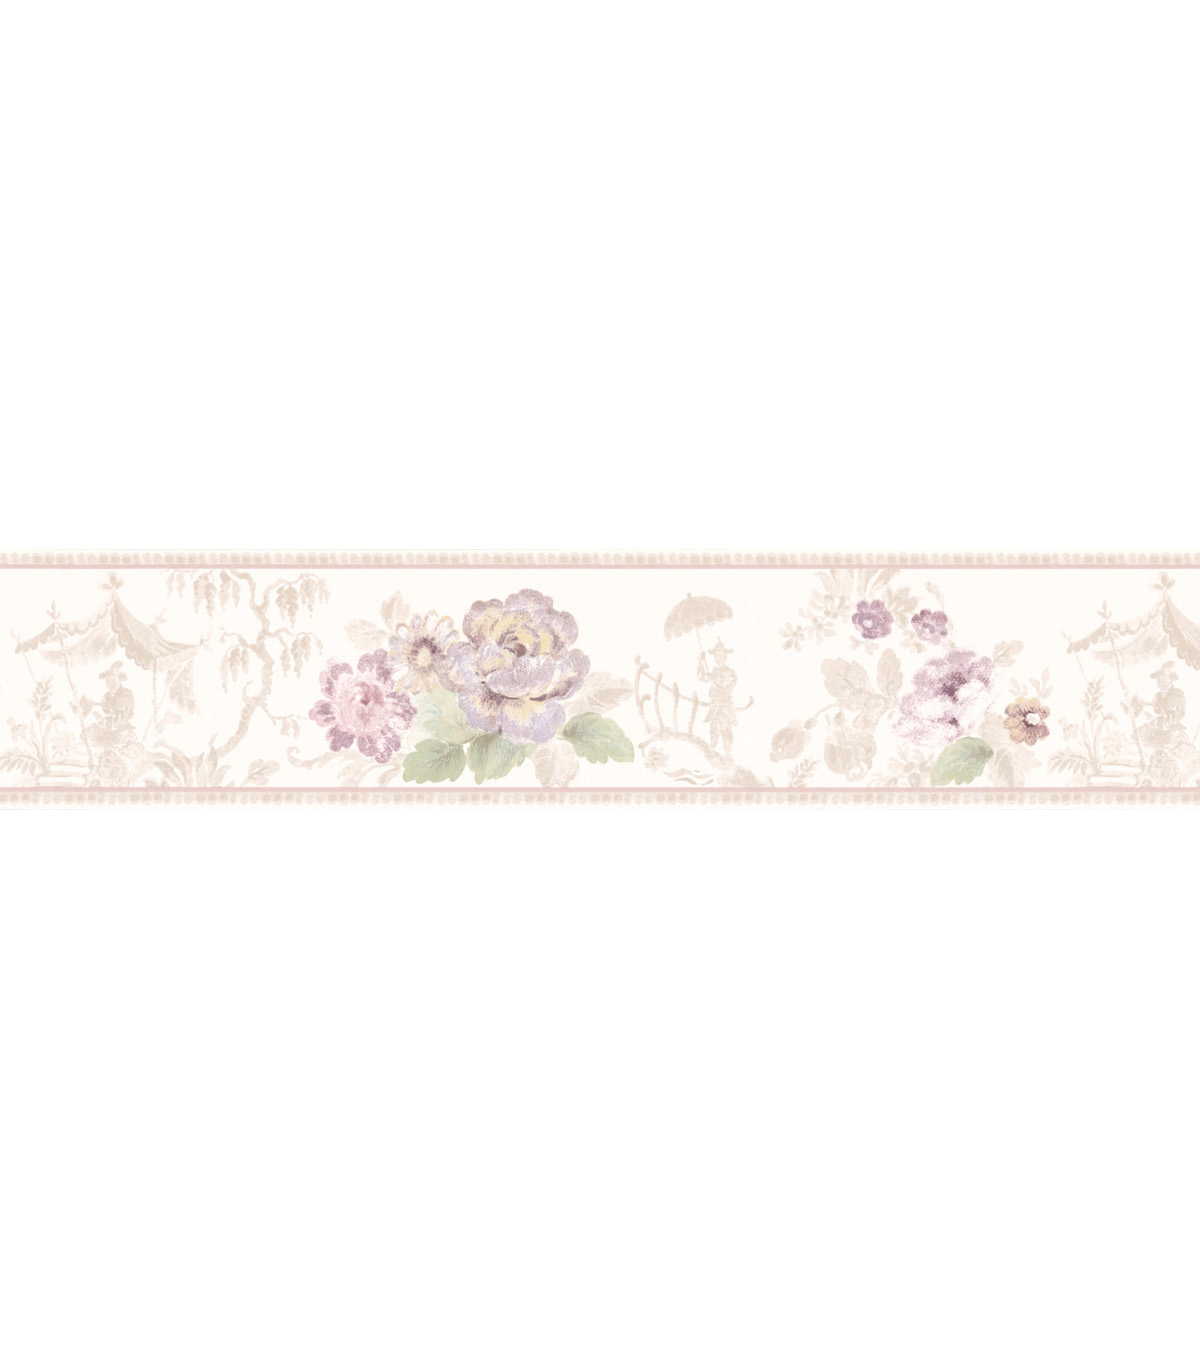 Toile Scenic Floral Wallpaper Border Multicolor SampleToile Scenic 1200x1360